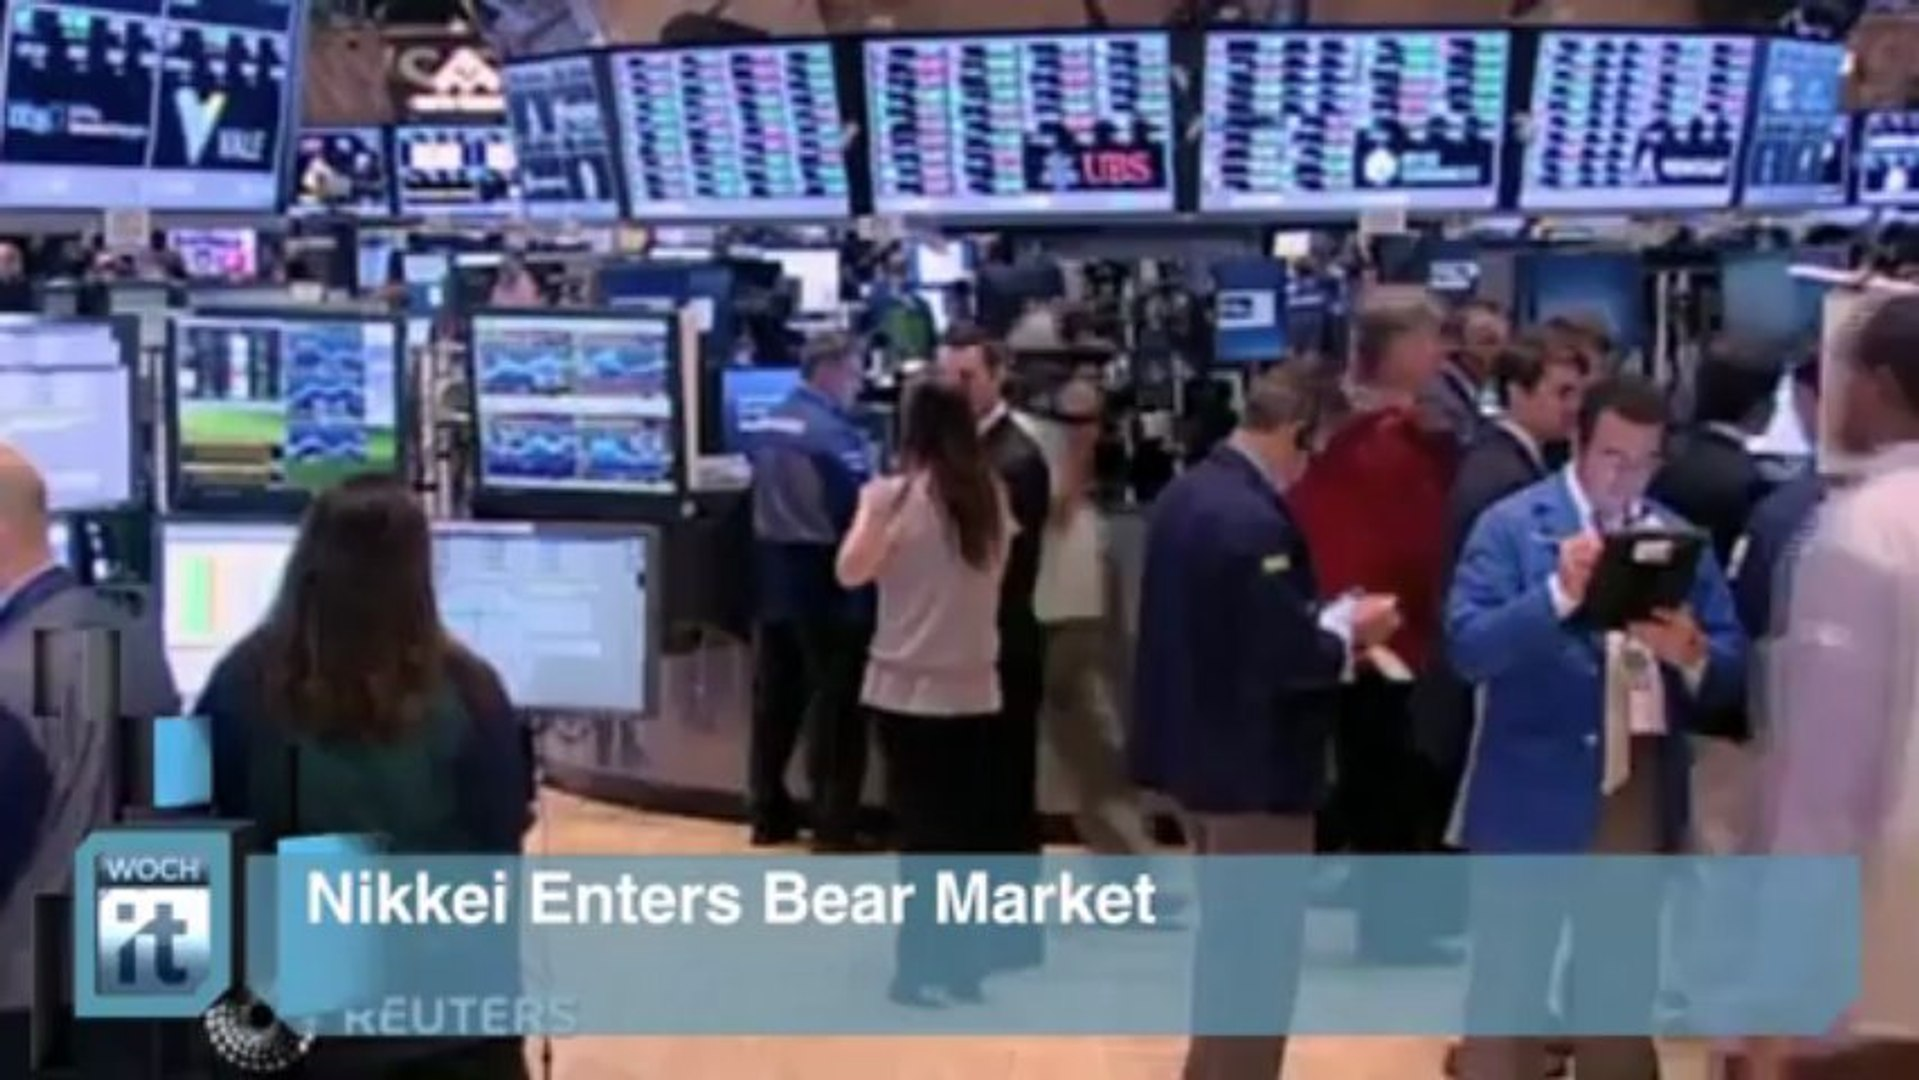 Stock Markets Latest News: US Stocks Edge Lower as Japanese Market Slumps